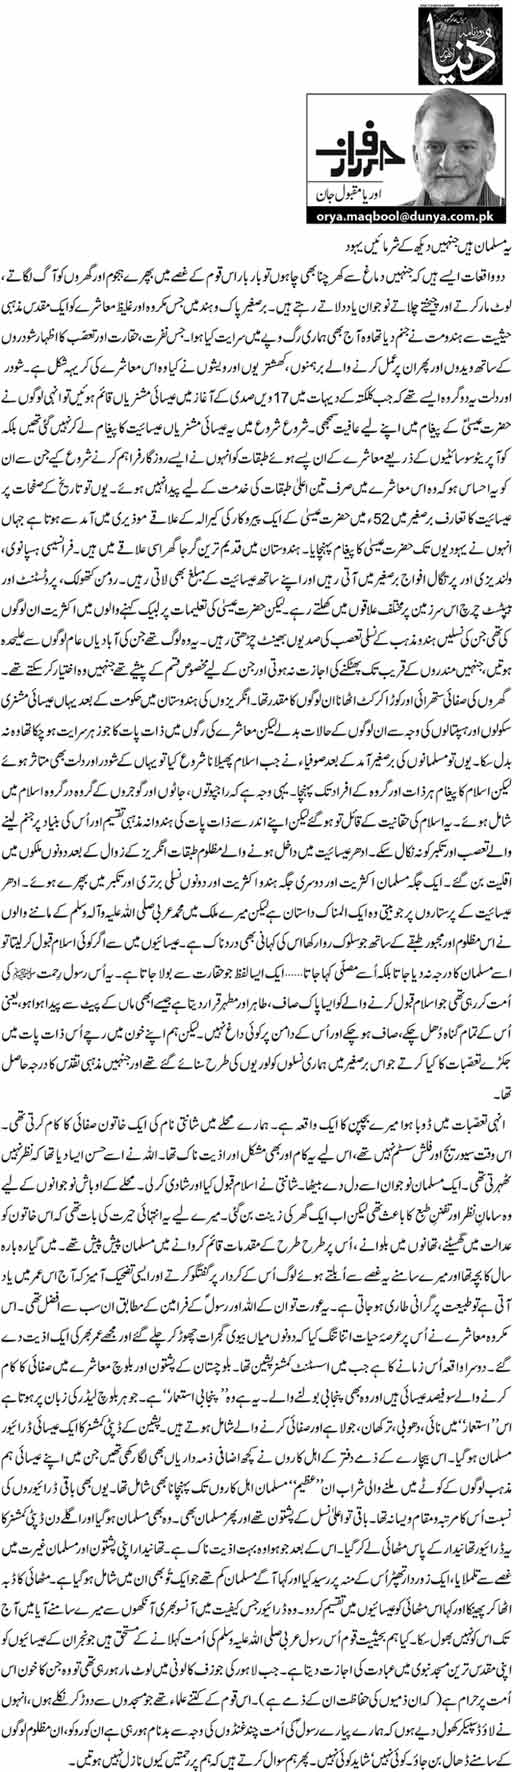 Yeh Muslims hain jinhain daikh k sharmain Jews - Orya Maqbool Jan